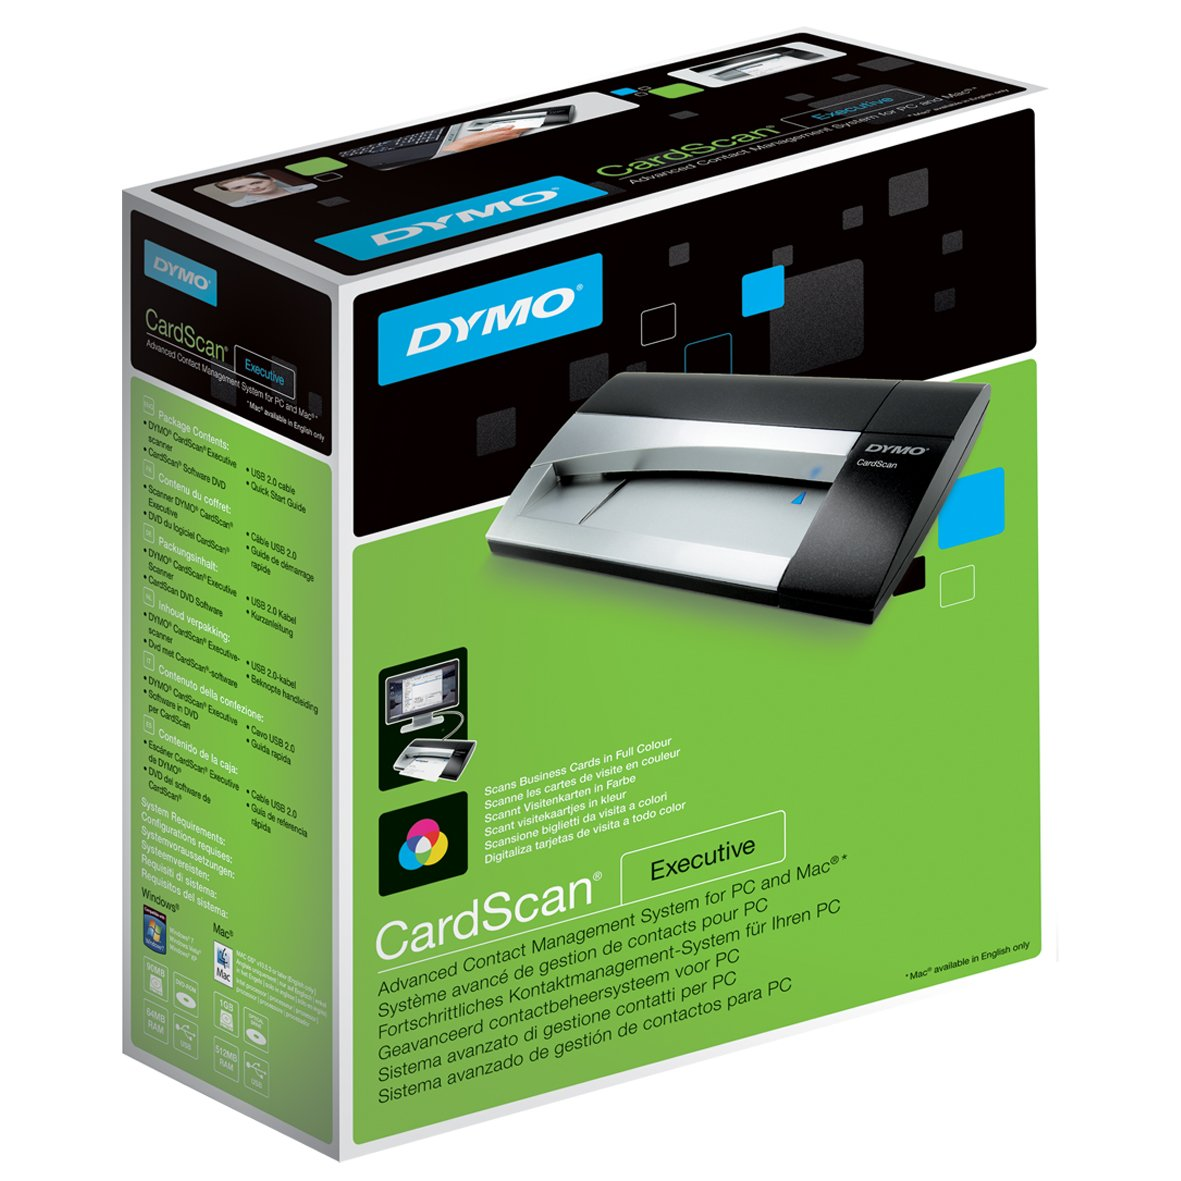 Amazon.com: DYMO CardScan v9 Executive Business Card Scanner and ...